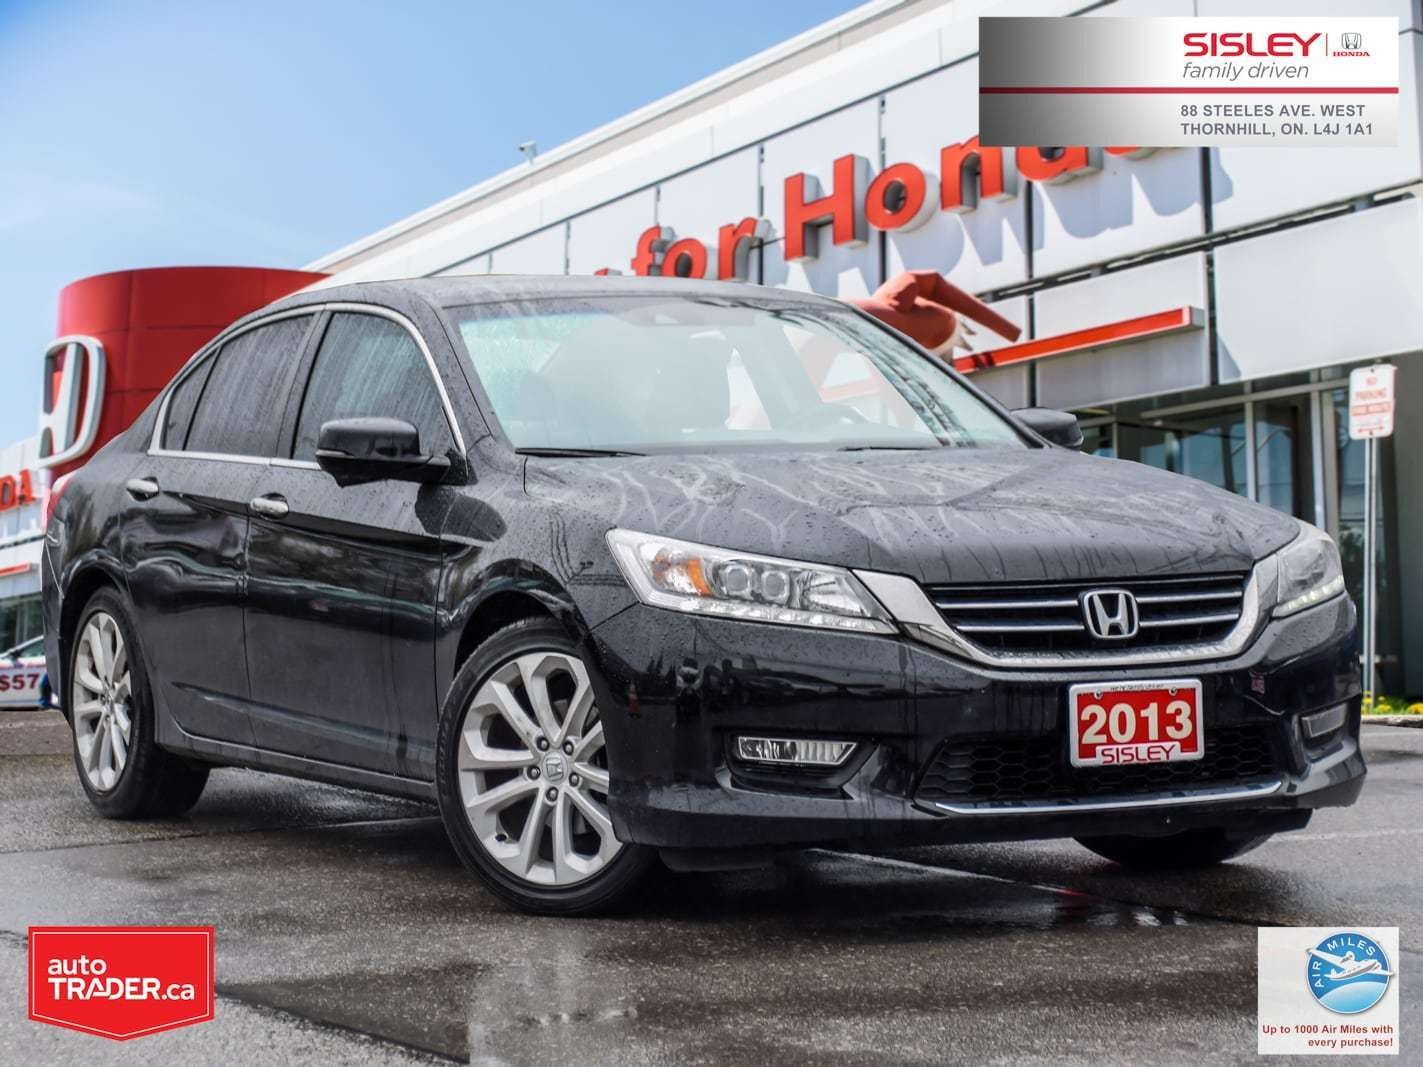 20130 honda accord 1485 1